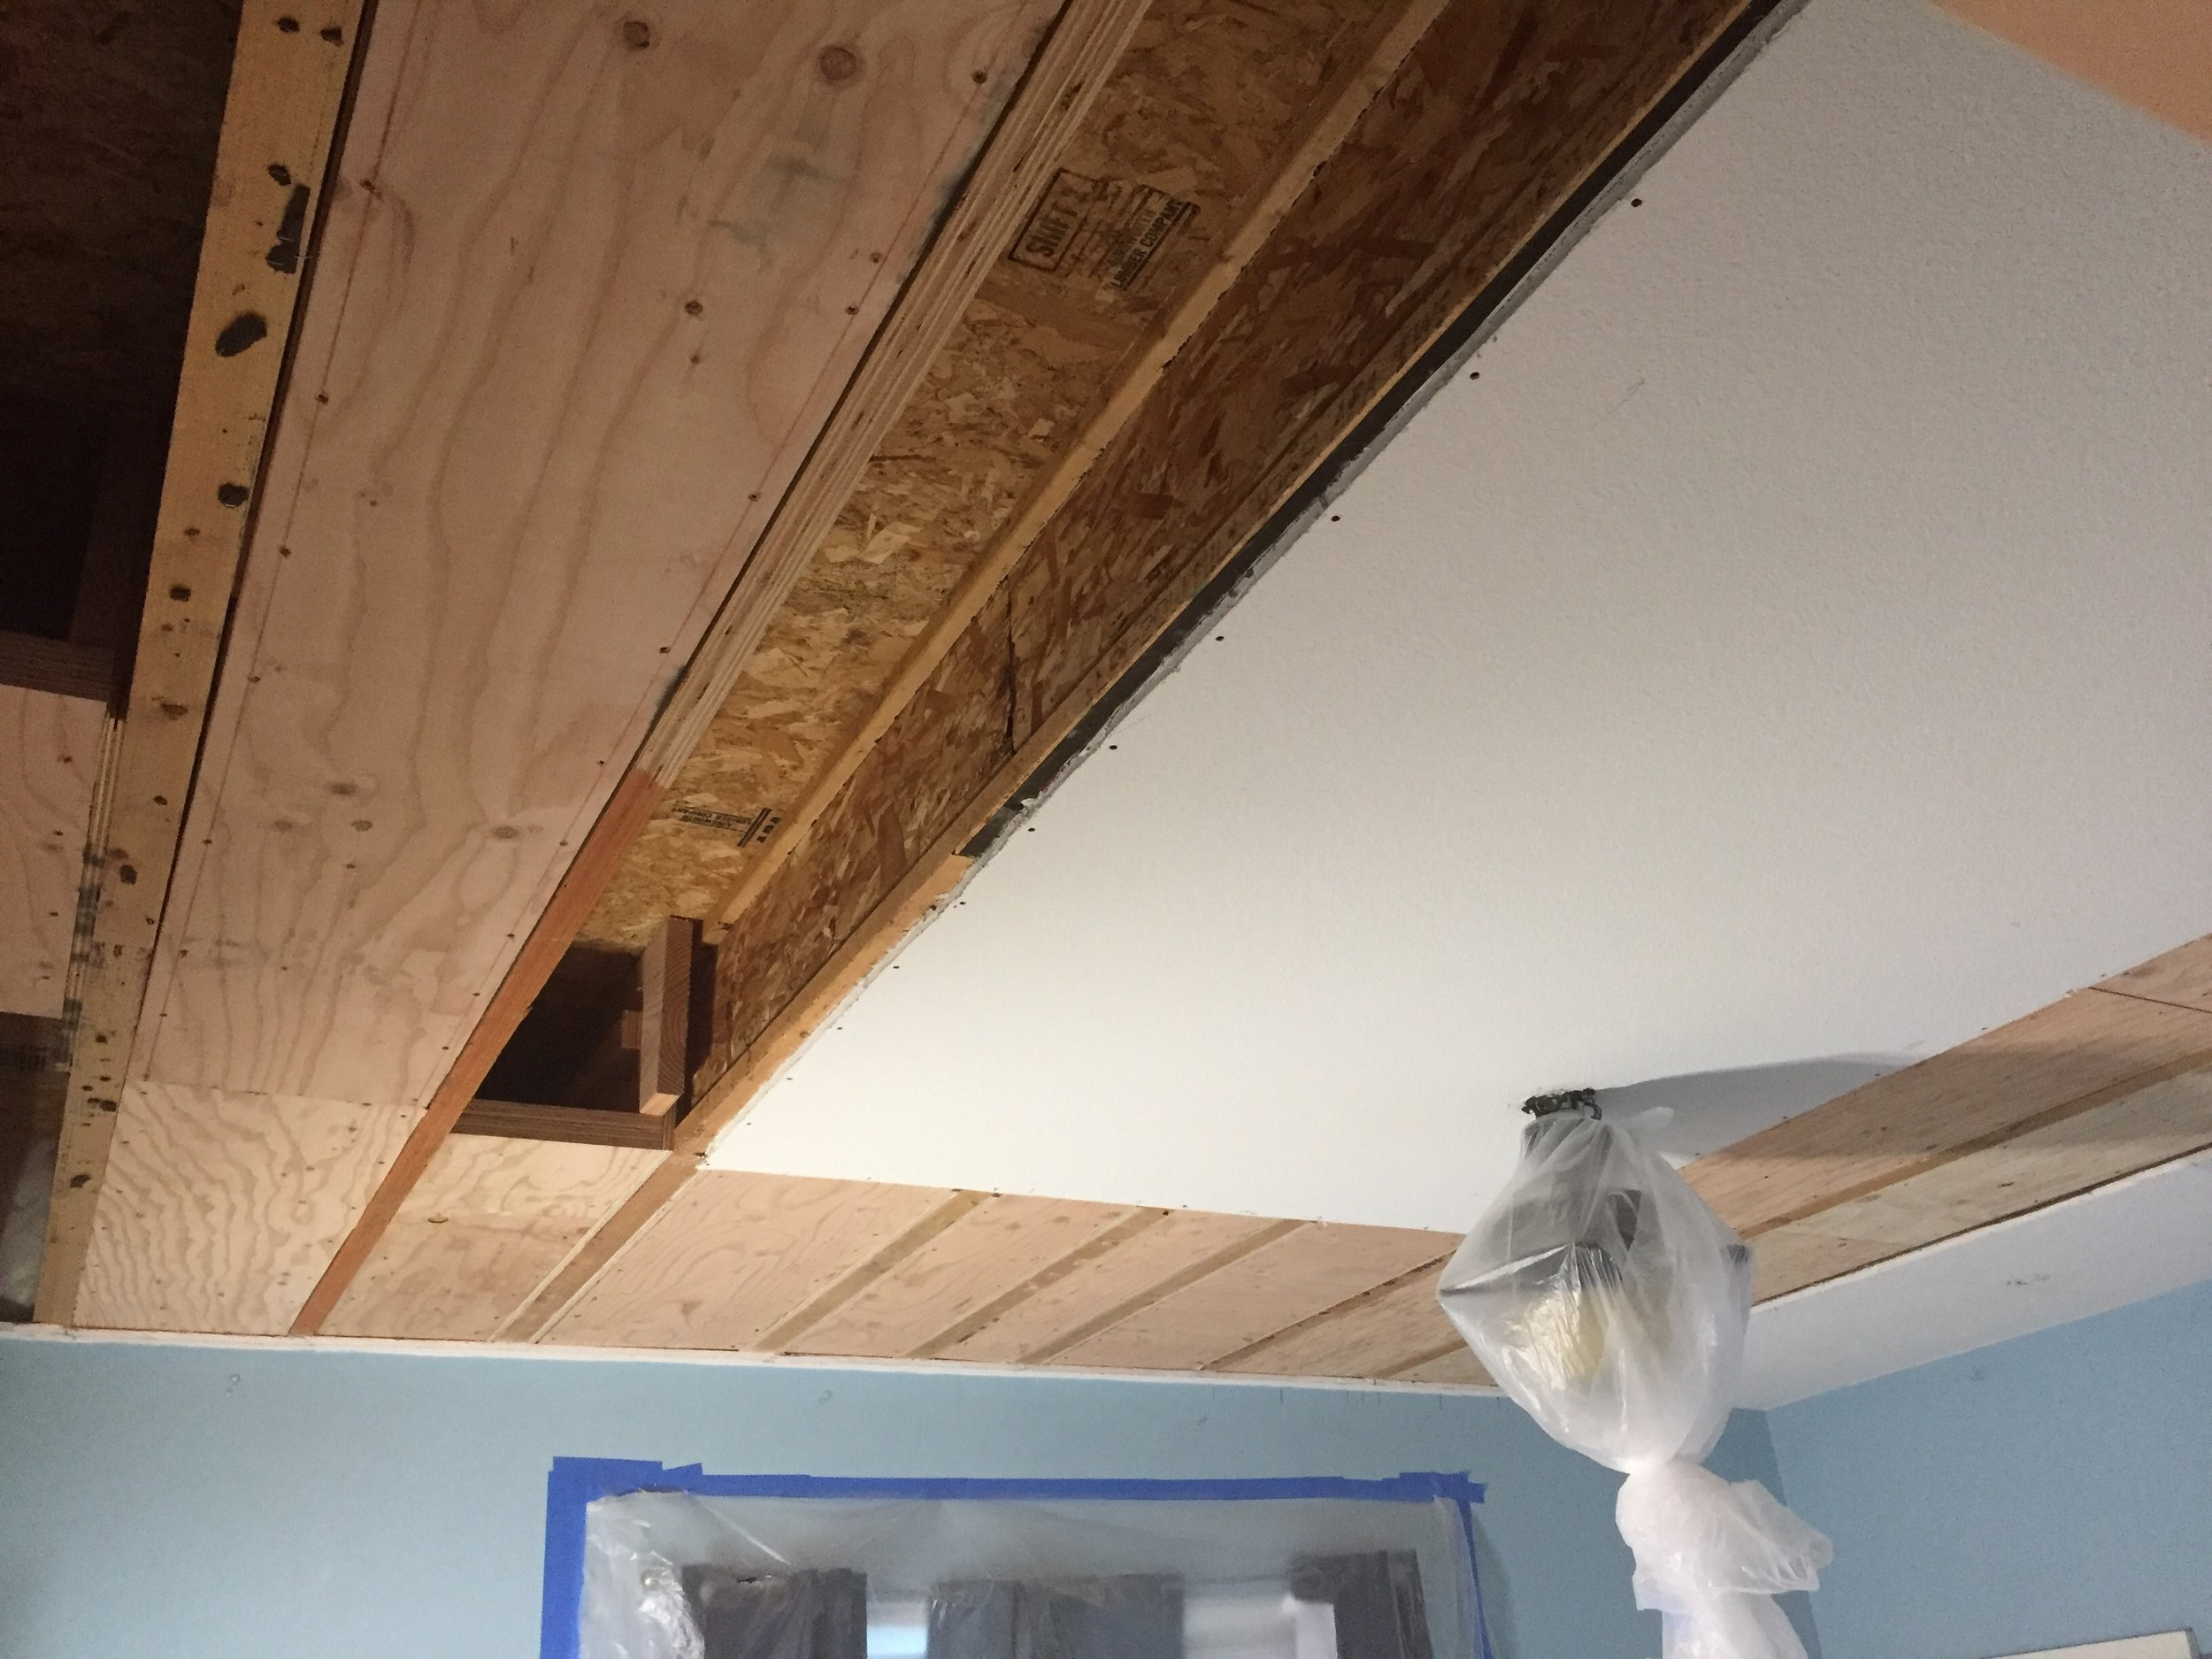 Overhead ceiling lift reinforcing